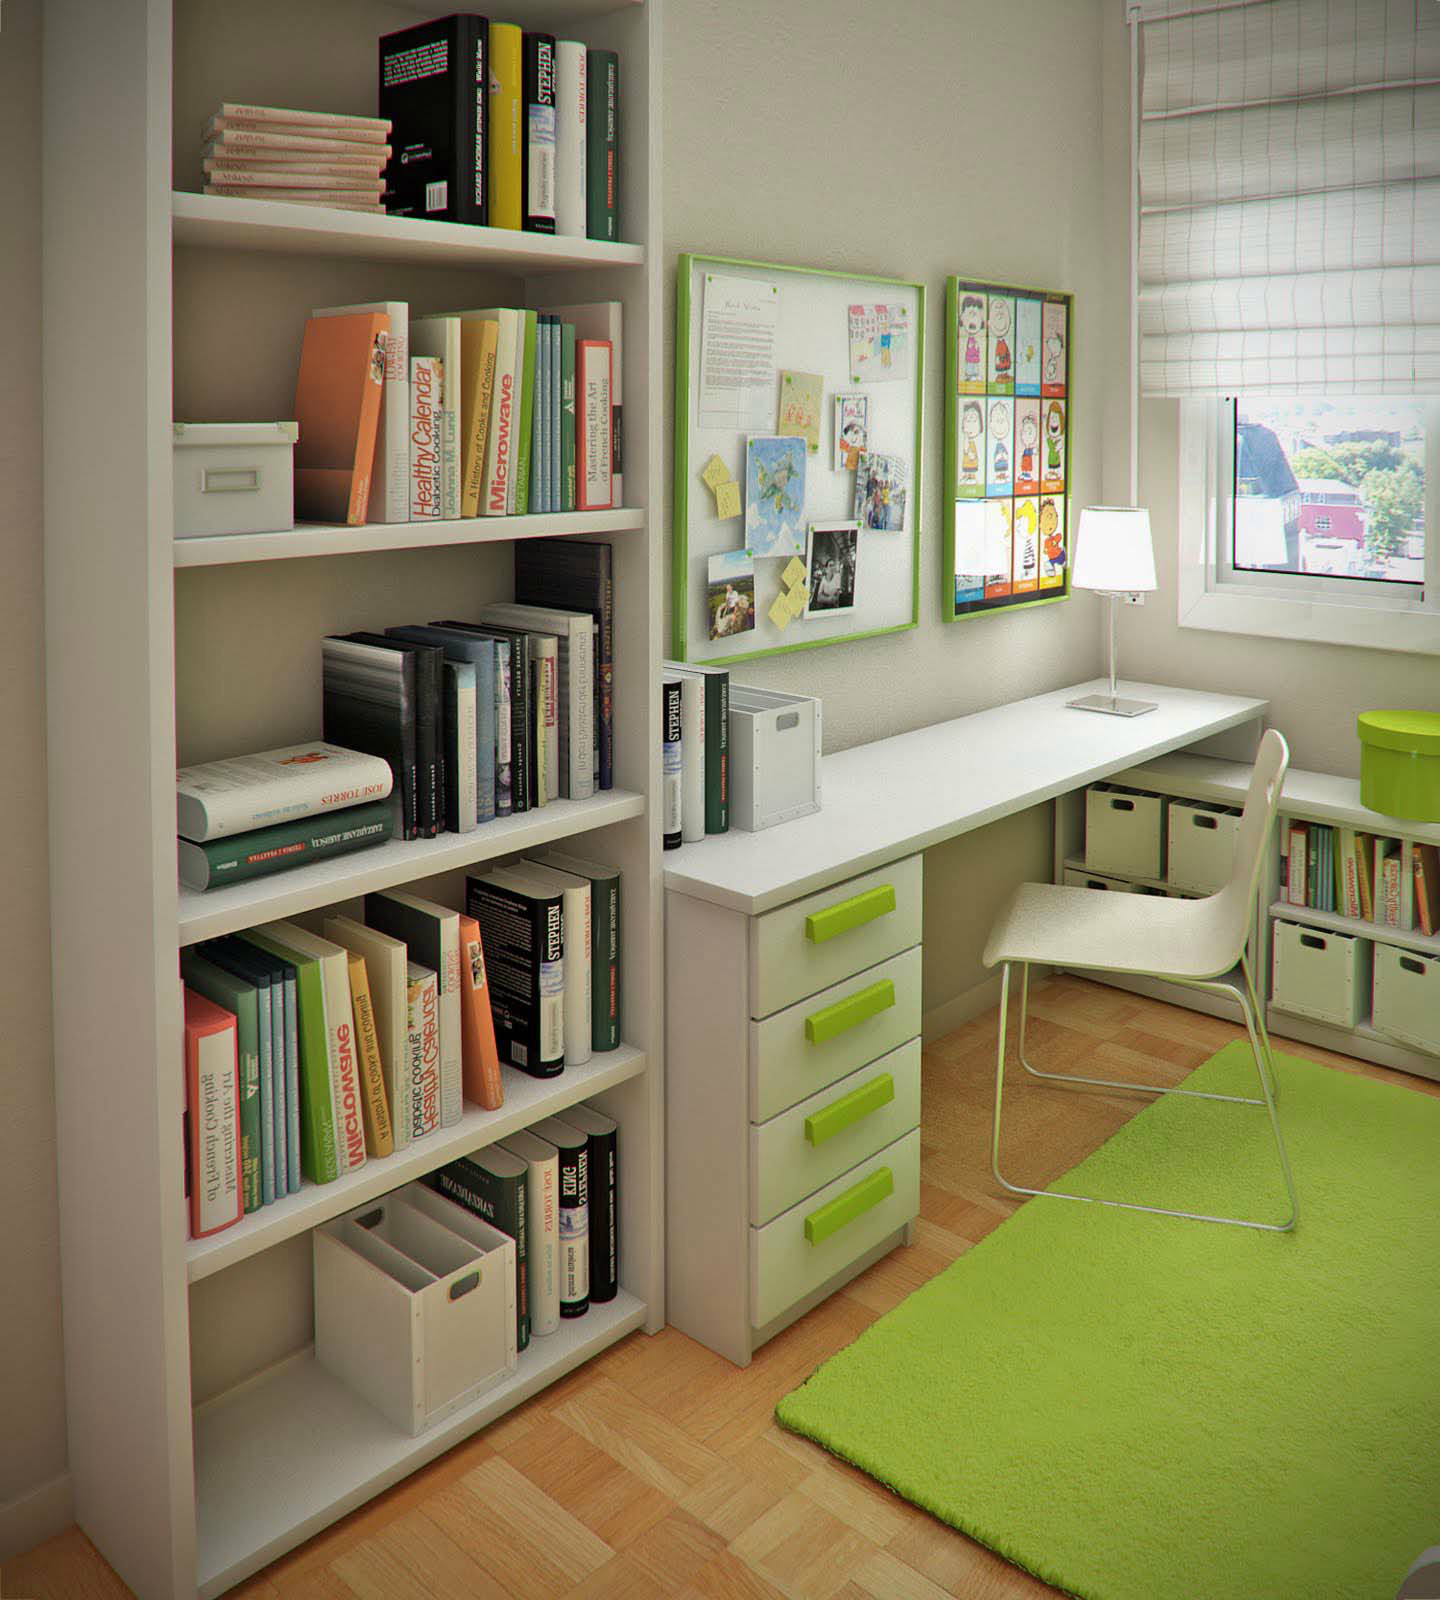 Study Room Decor Ideas: Feng Shui For Study Room